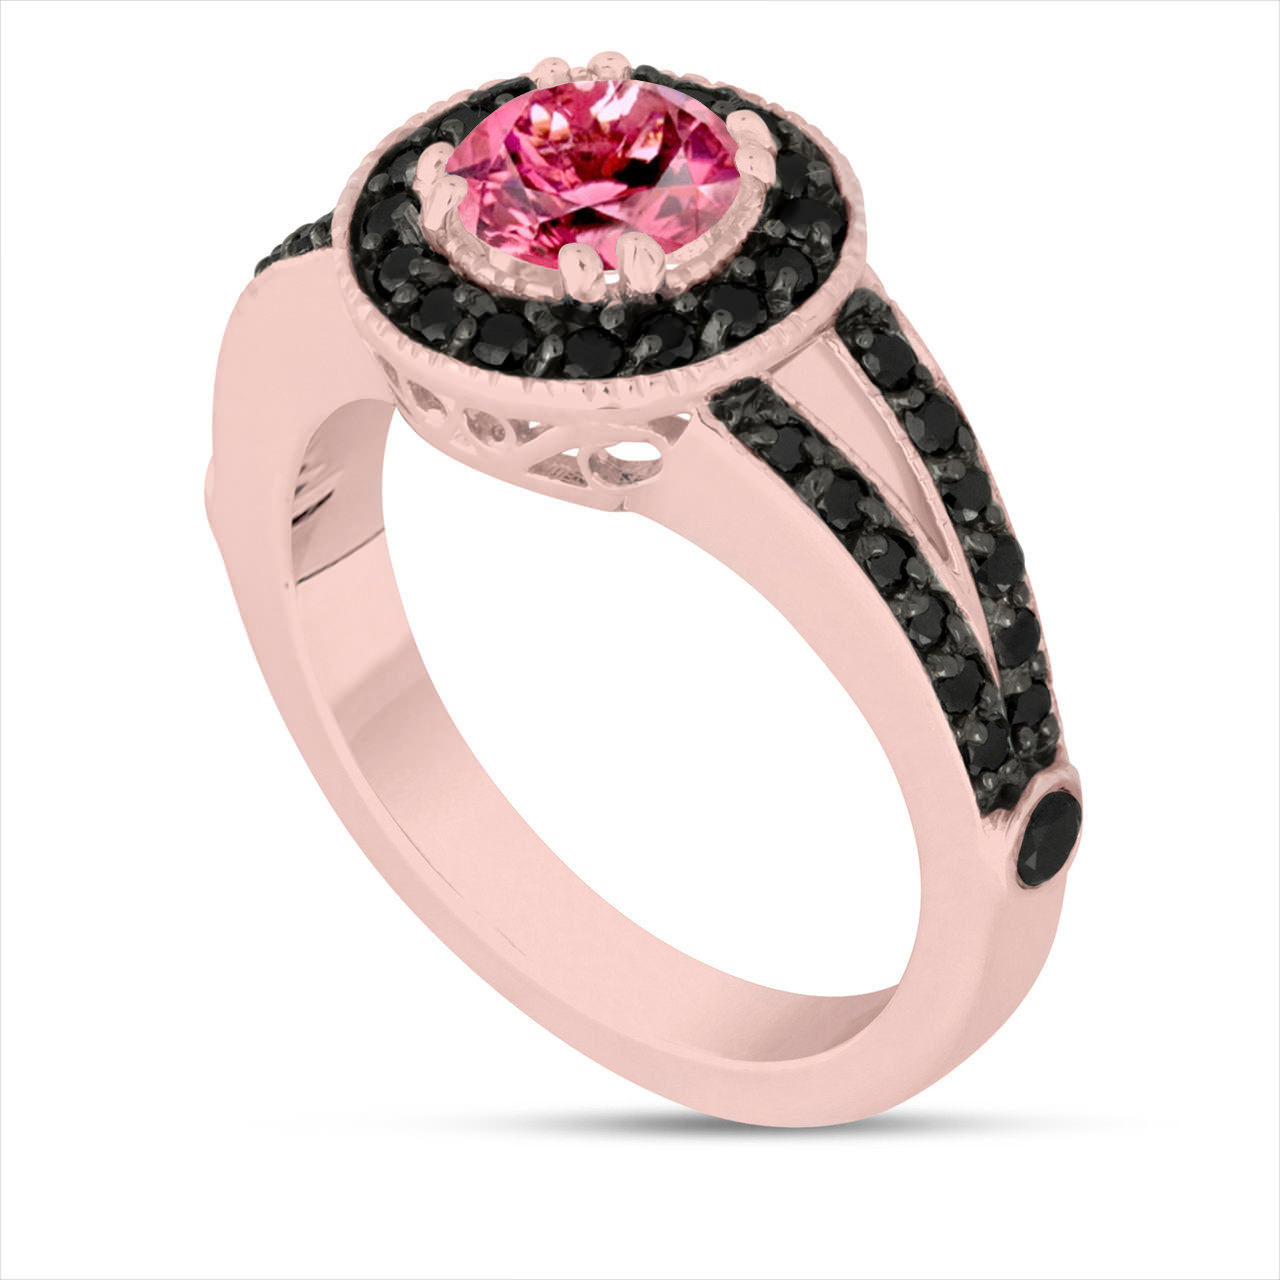 Best Wedding Rings Black And Pink Gallery - Styles & Ideas 2018 ...